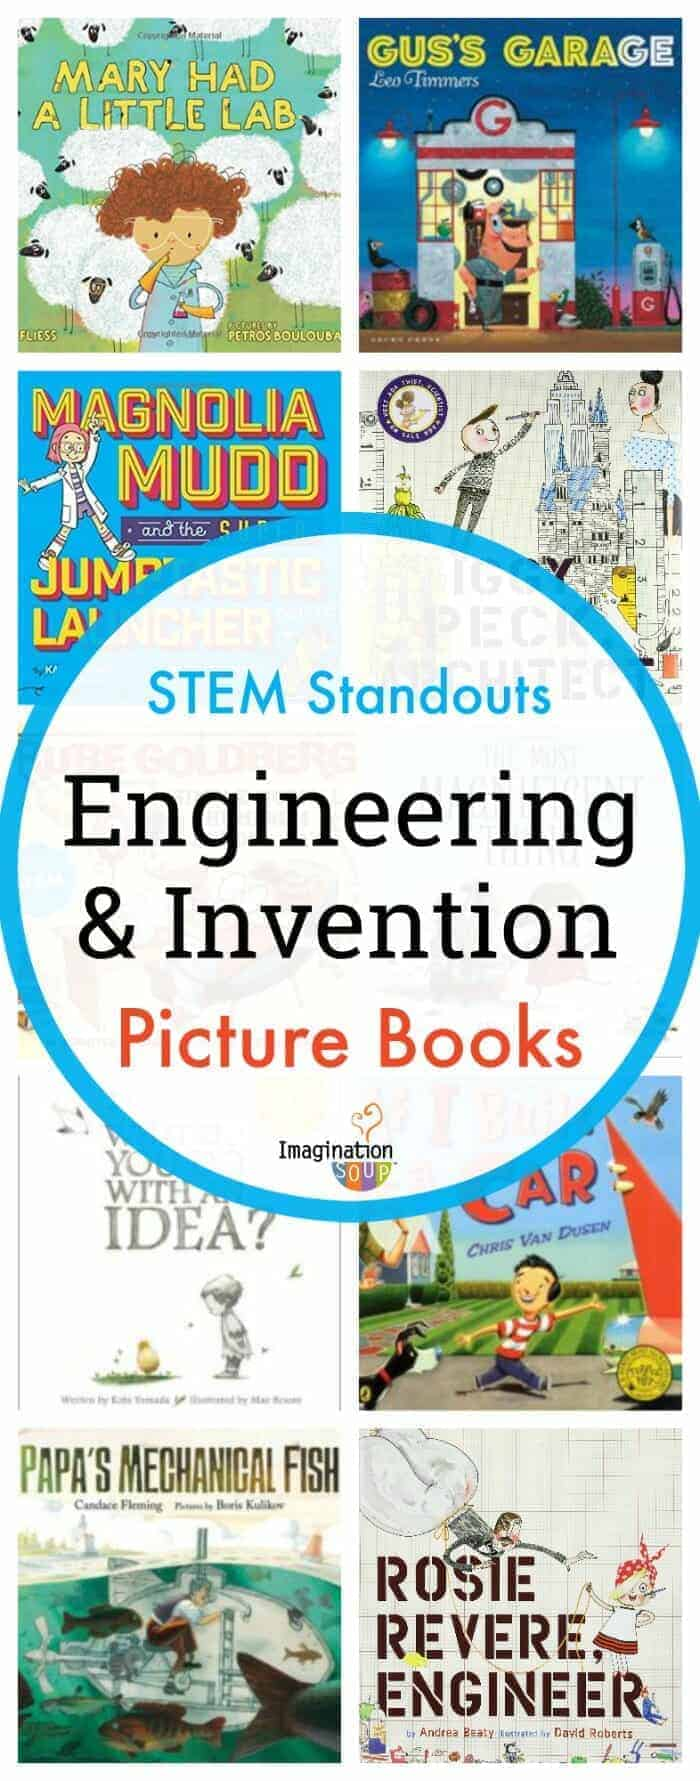 11 Standout STEM Engineering and Invention Picture Books